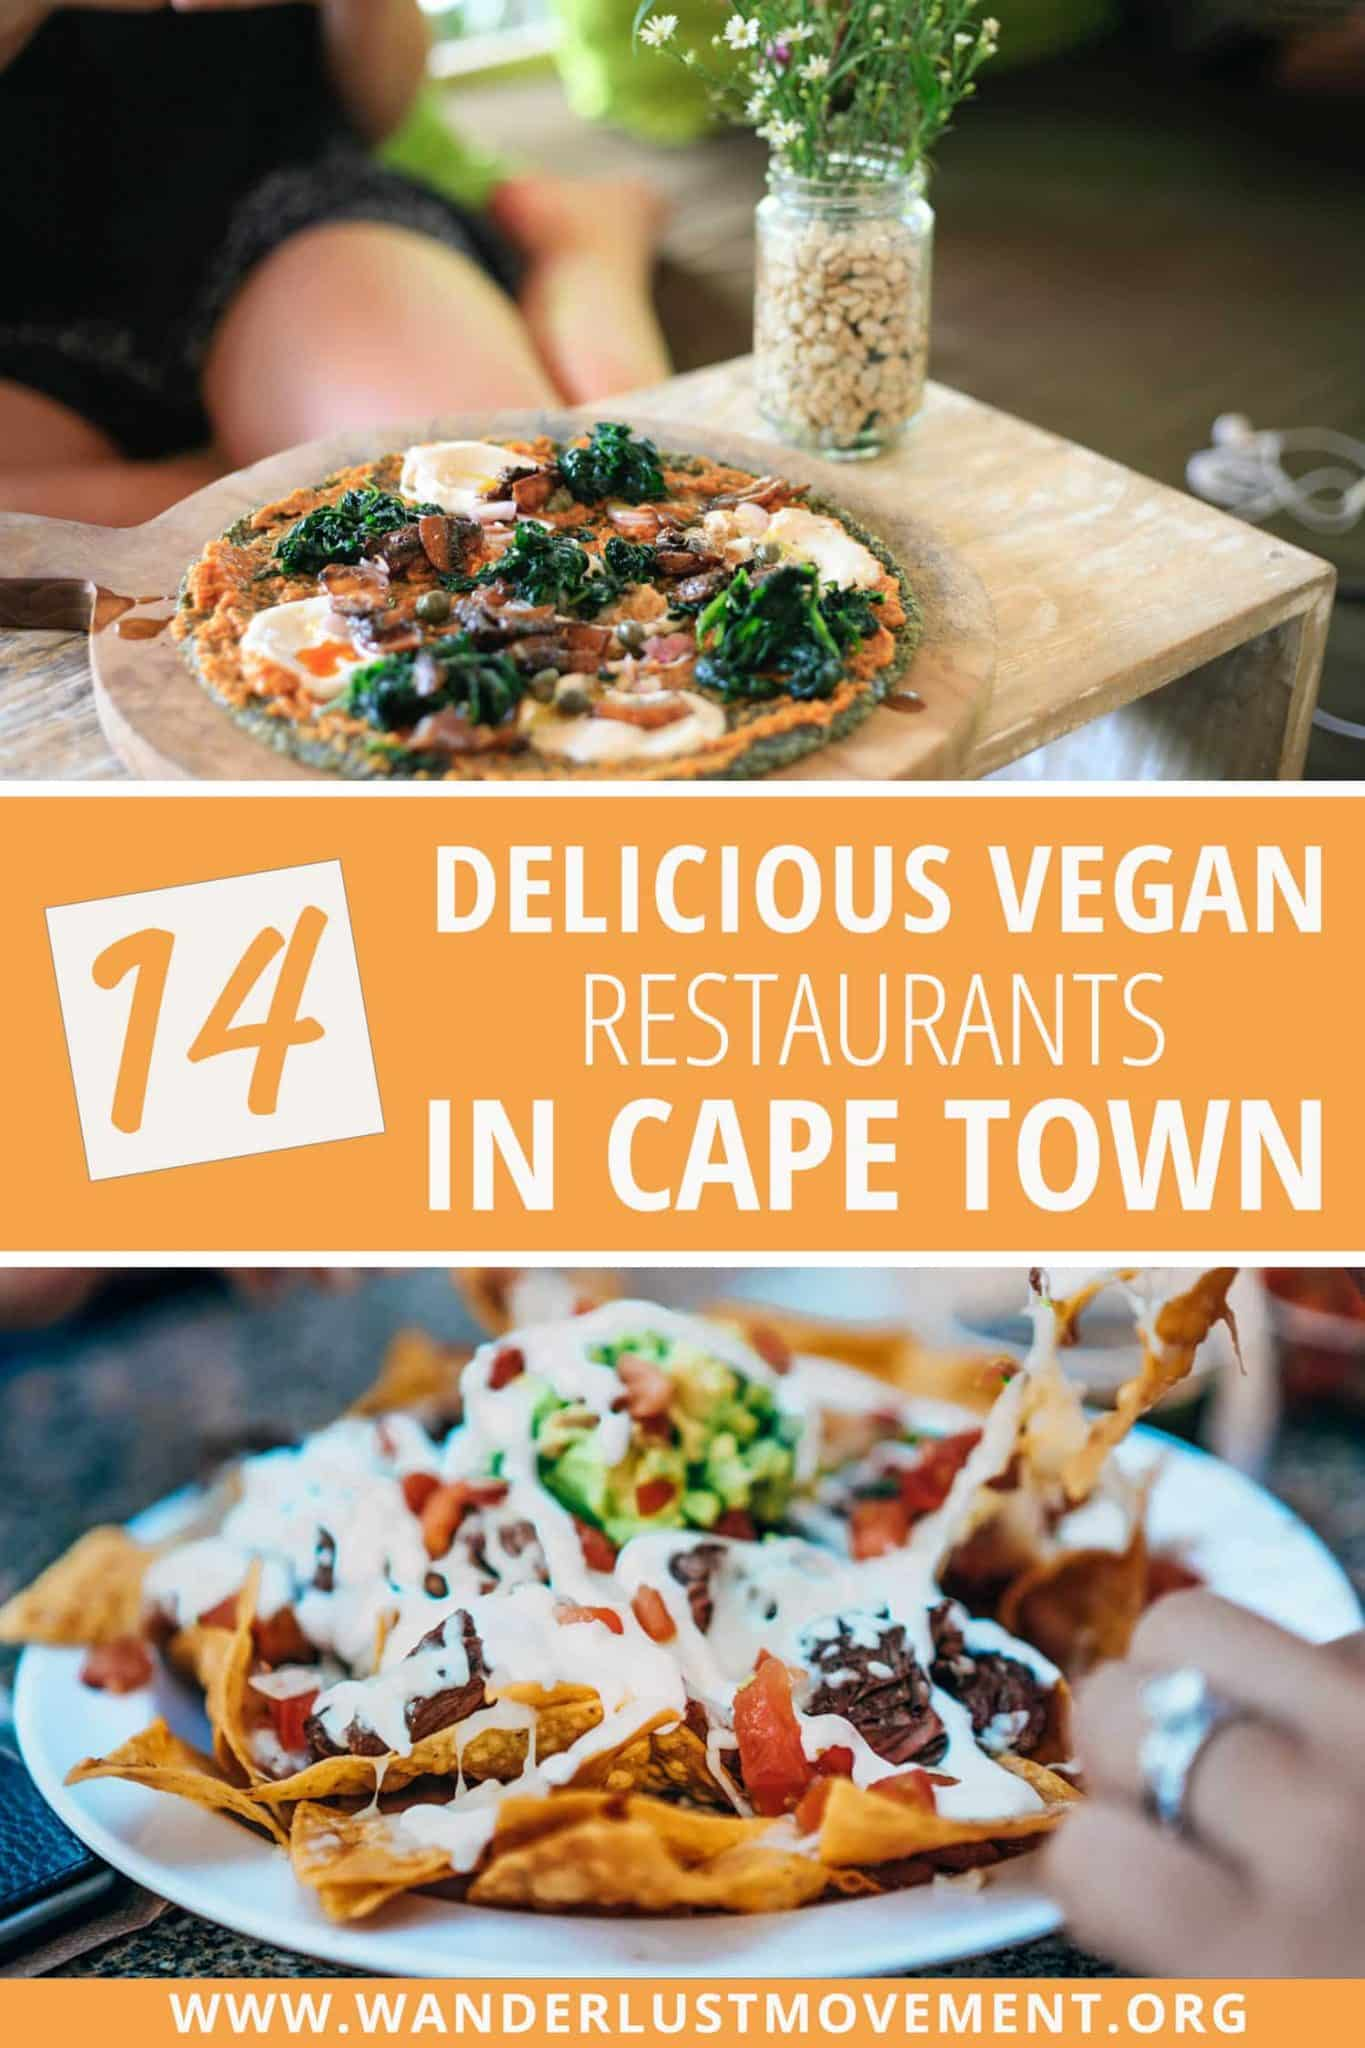 14 Delicious Vegan Restaurants In Cape Town You Need to Try